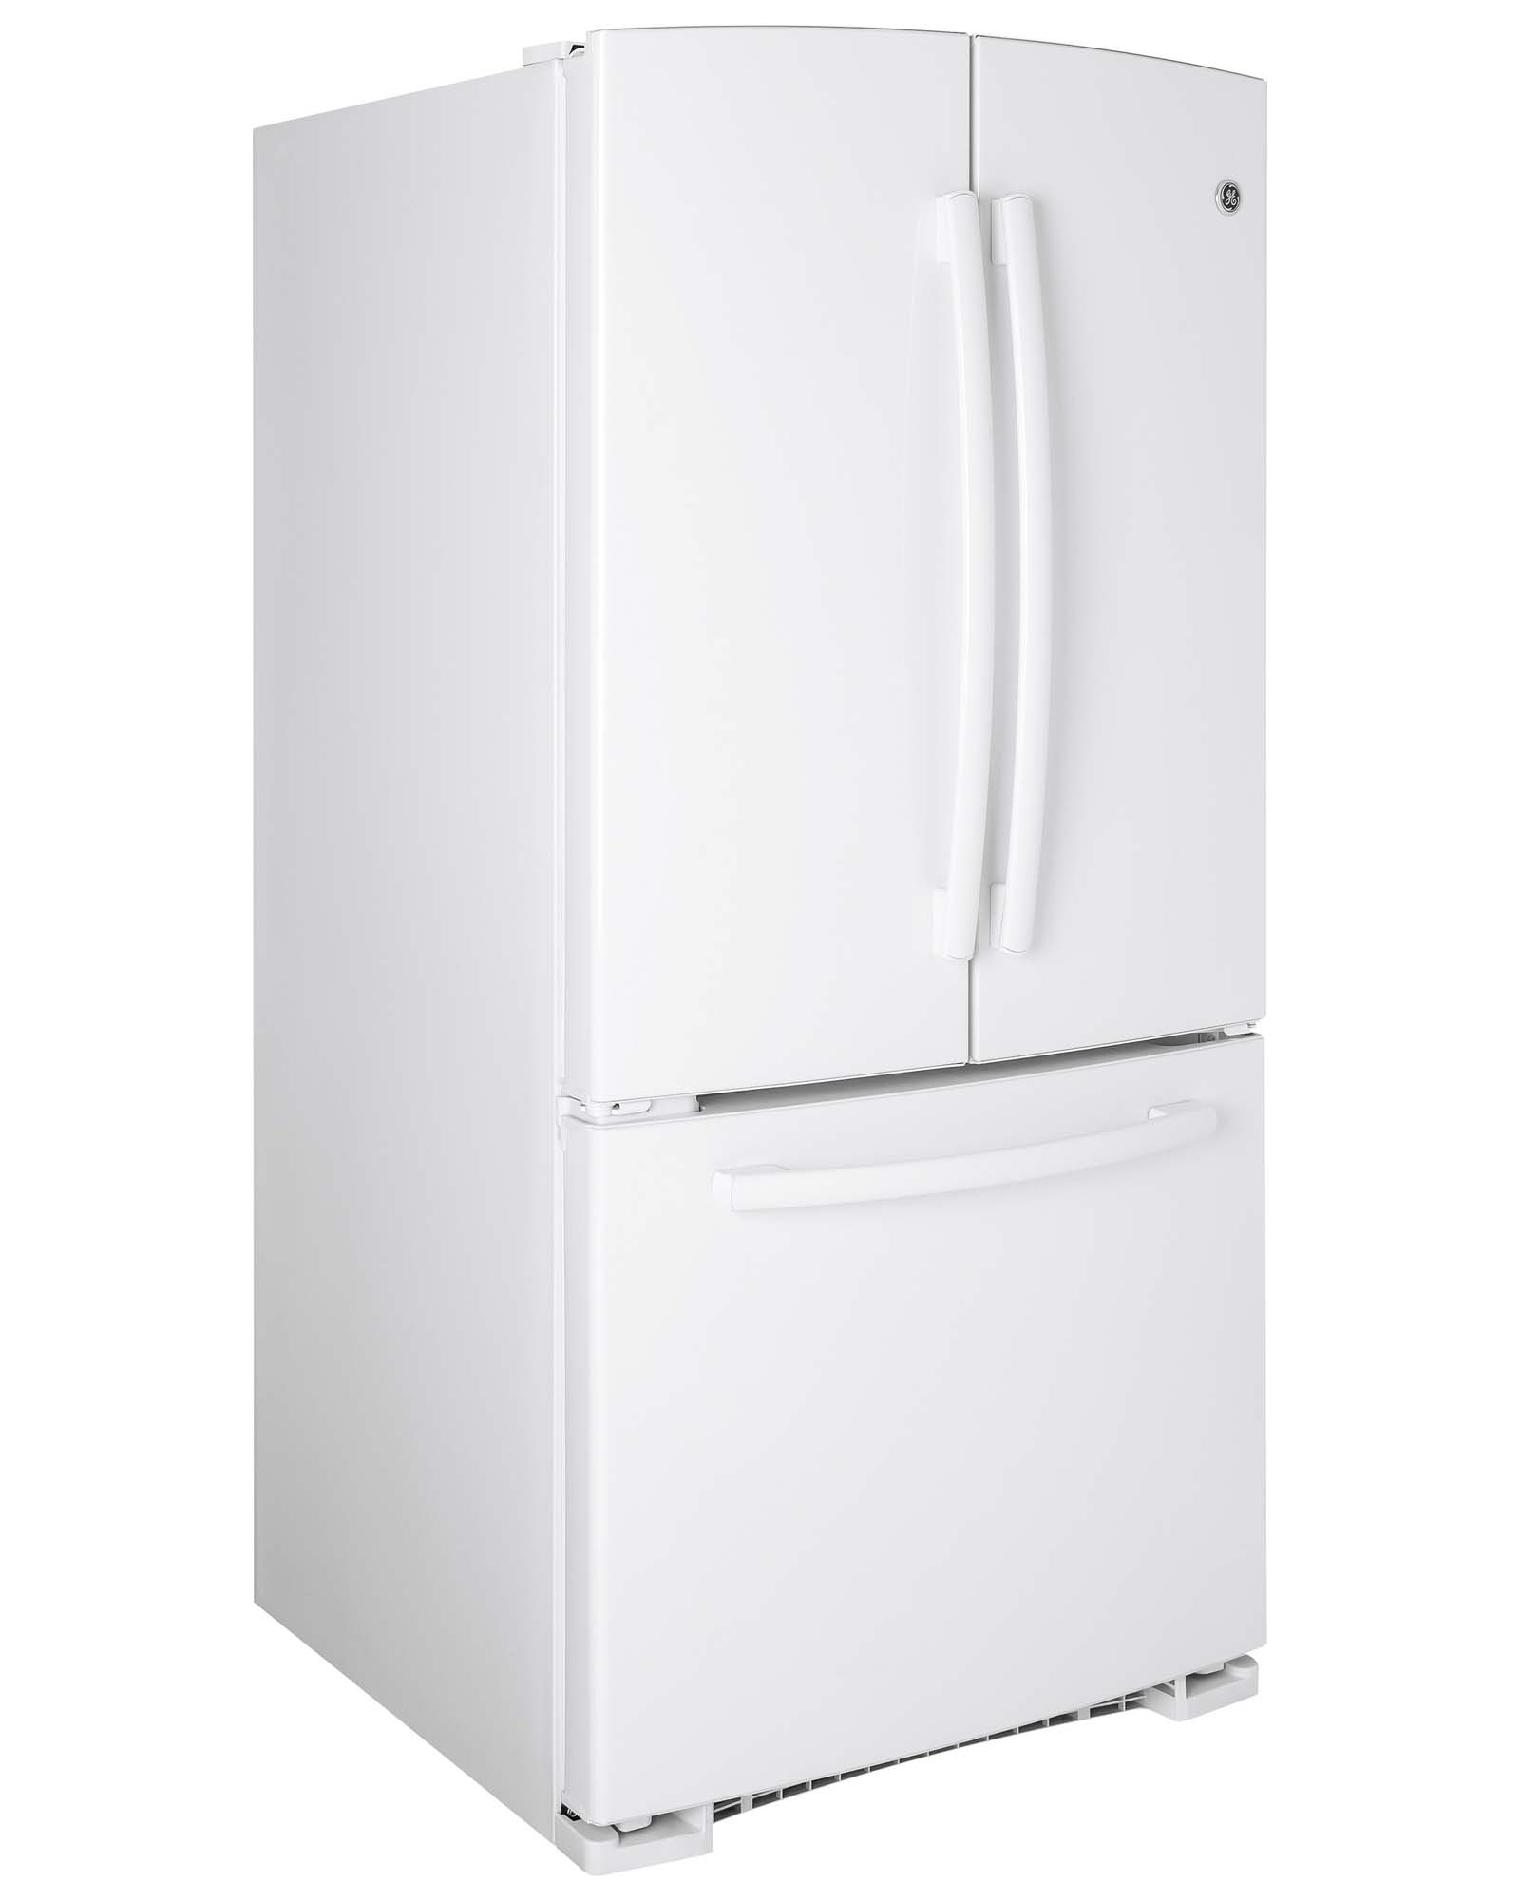 GE Appliances 22.1 cu. ft. French Door Bottom-Freezer Refrigerator - White